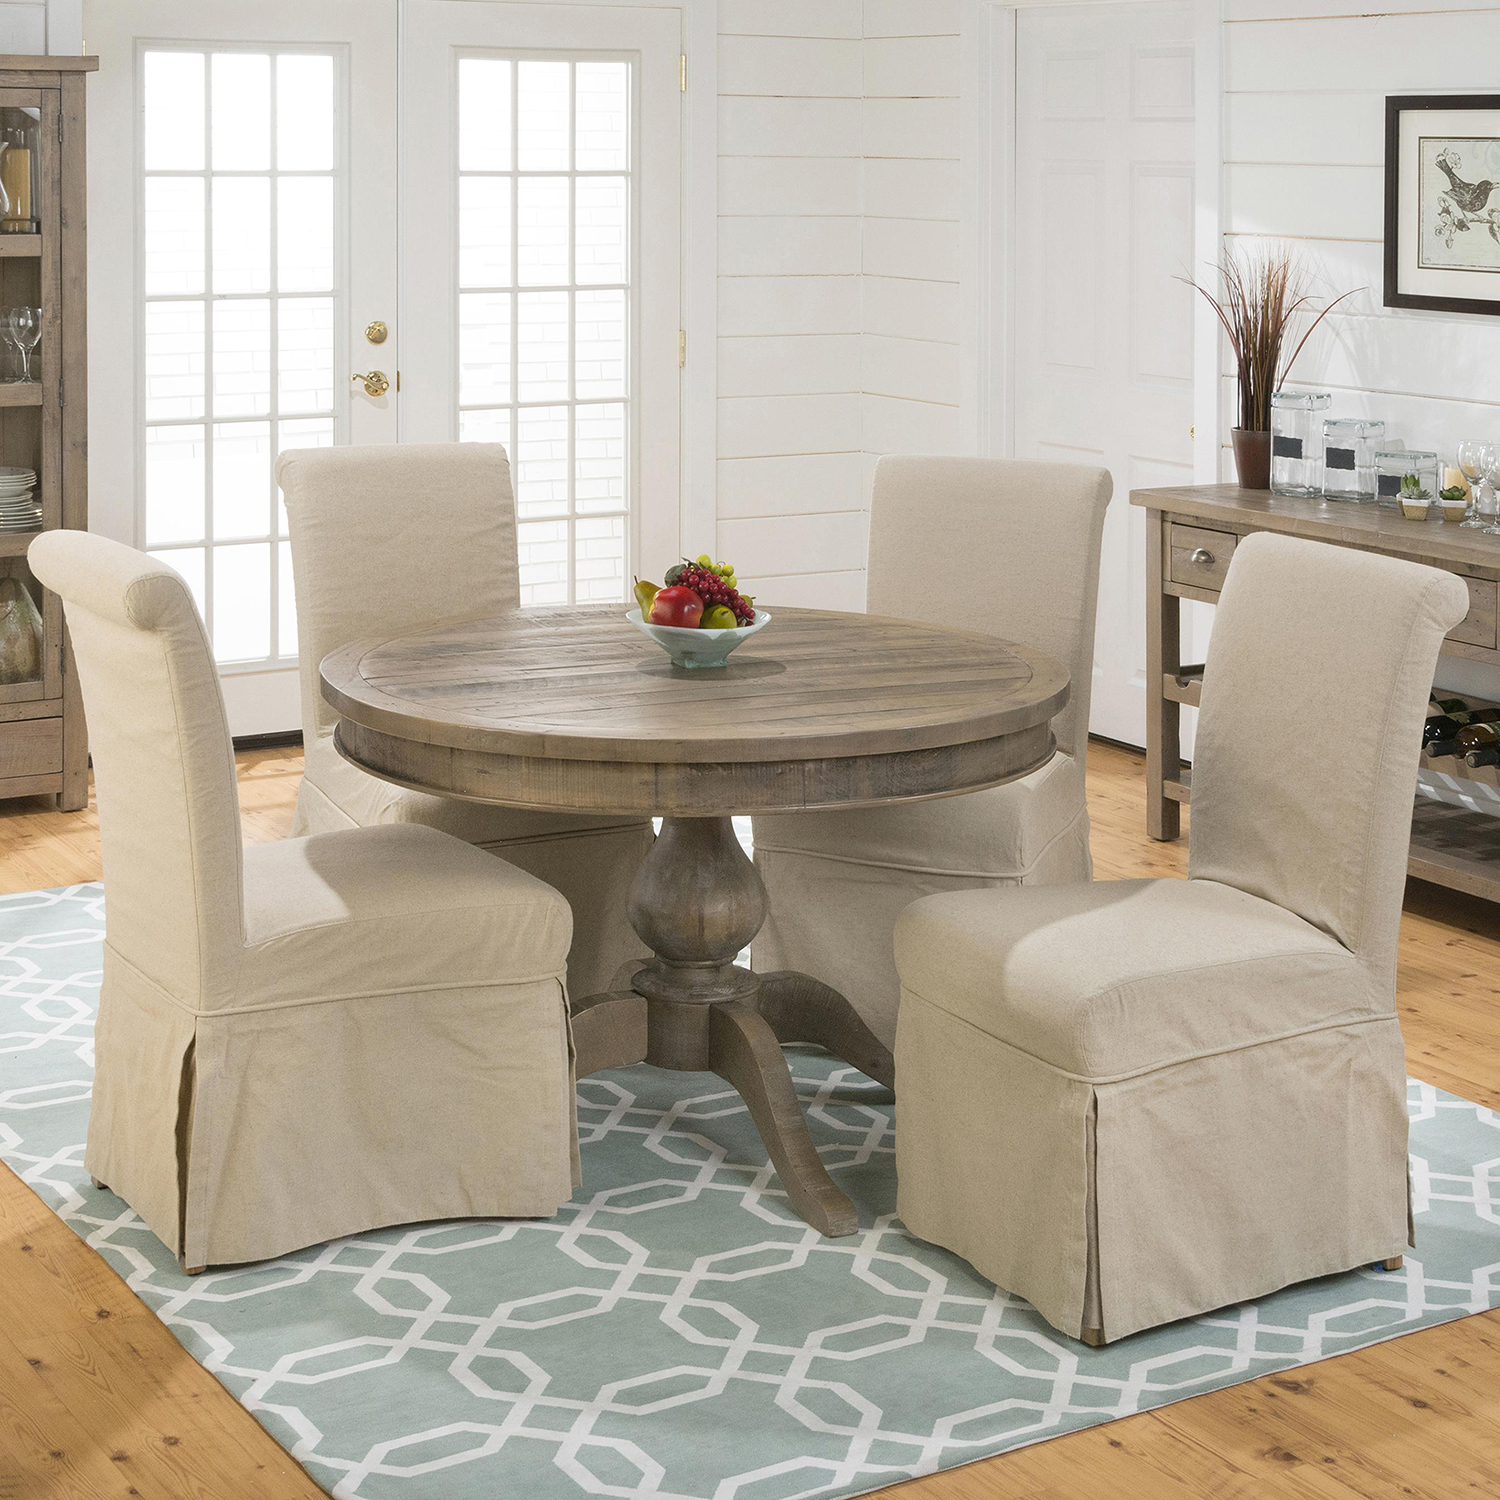 Slater Mill Slipcovered Parson Chair - JOFR-941-162KD